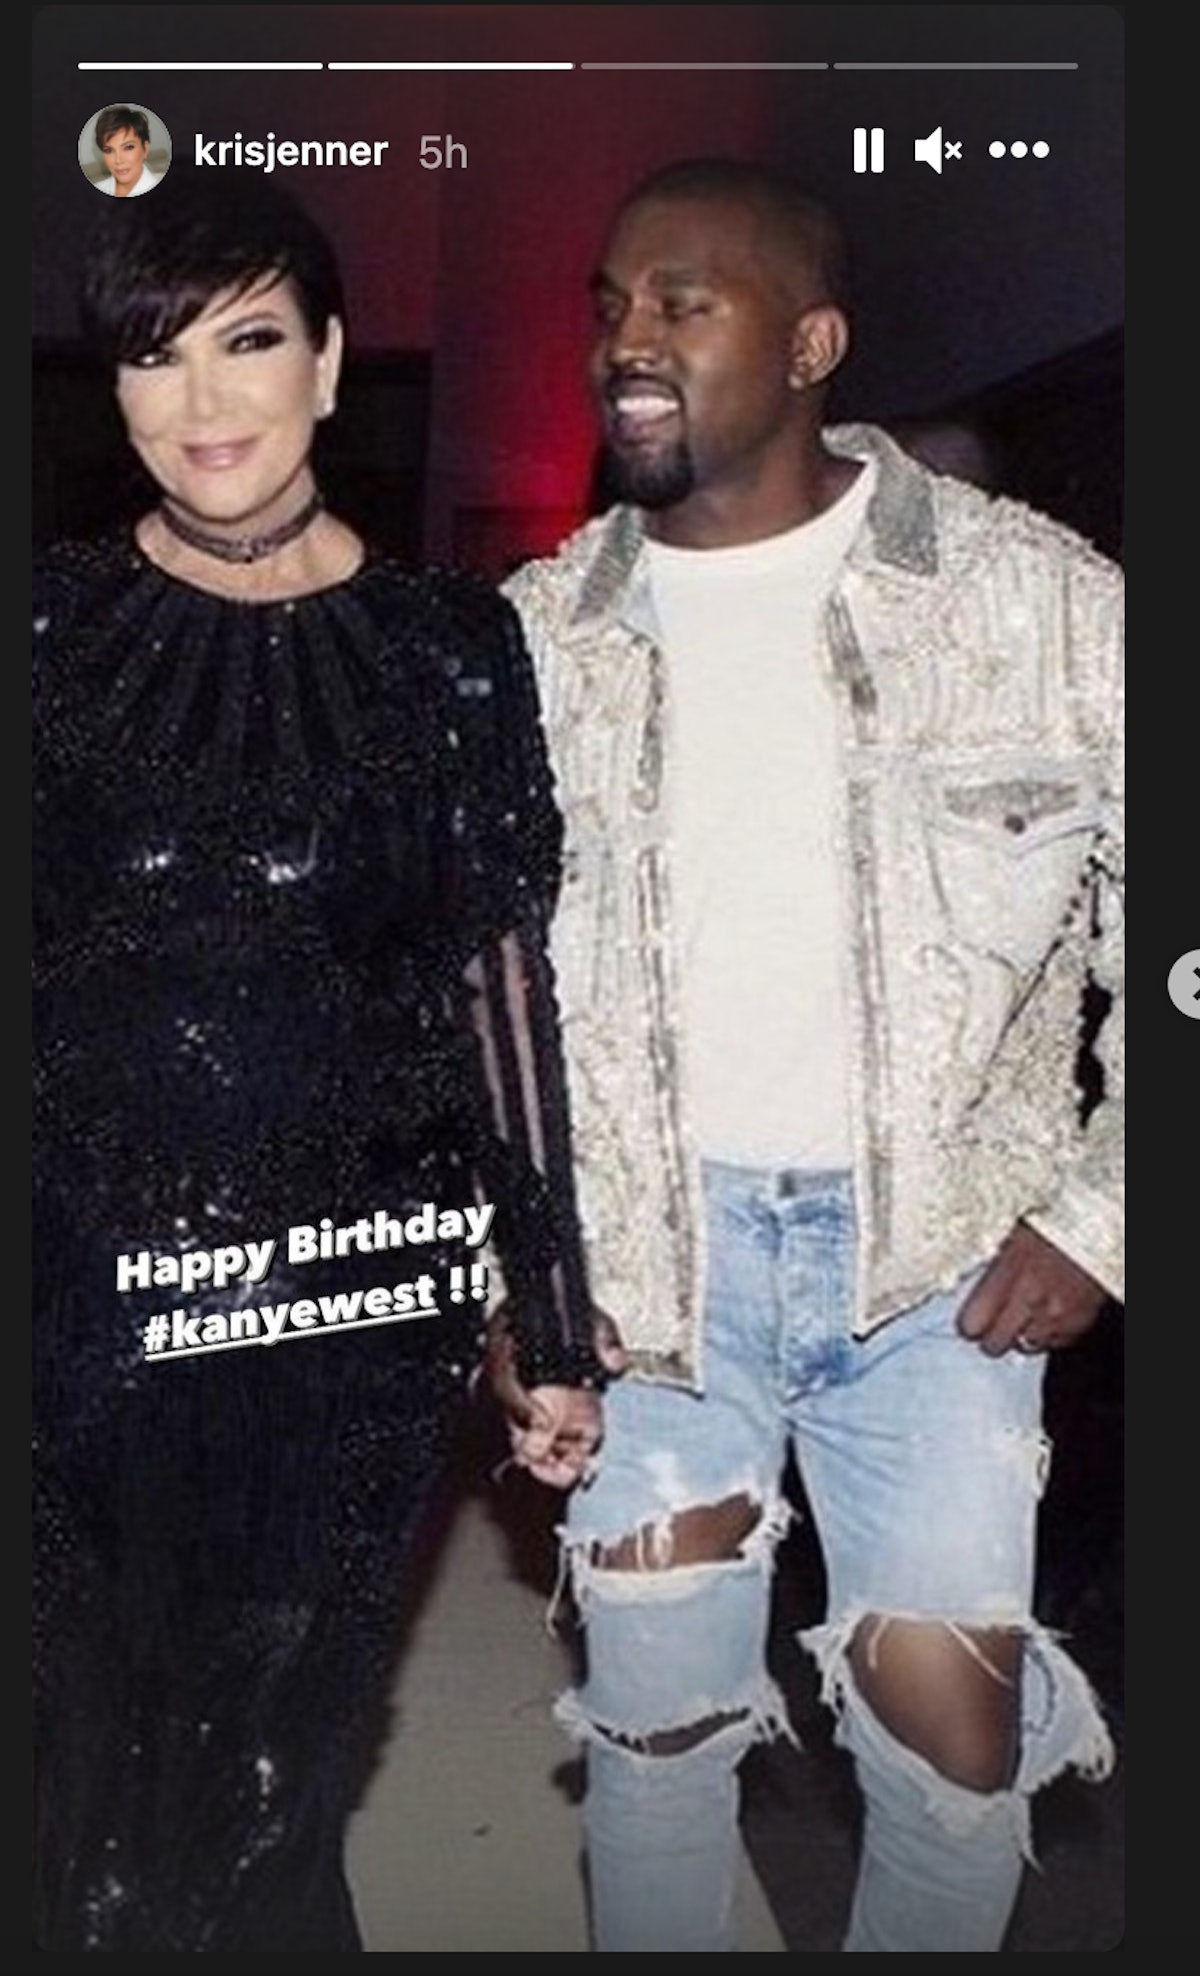 Kris Jenner wishes Kanye West a happy 44th birthday.